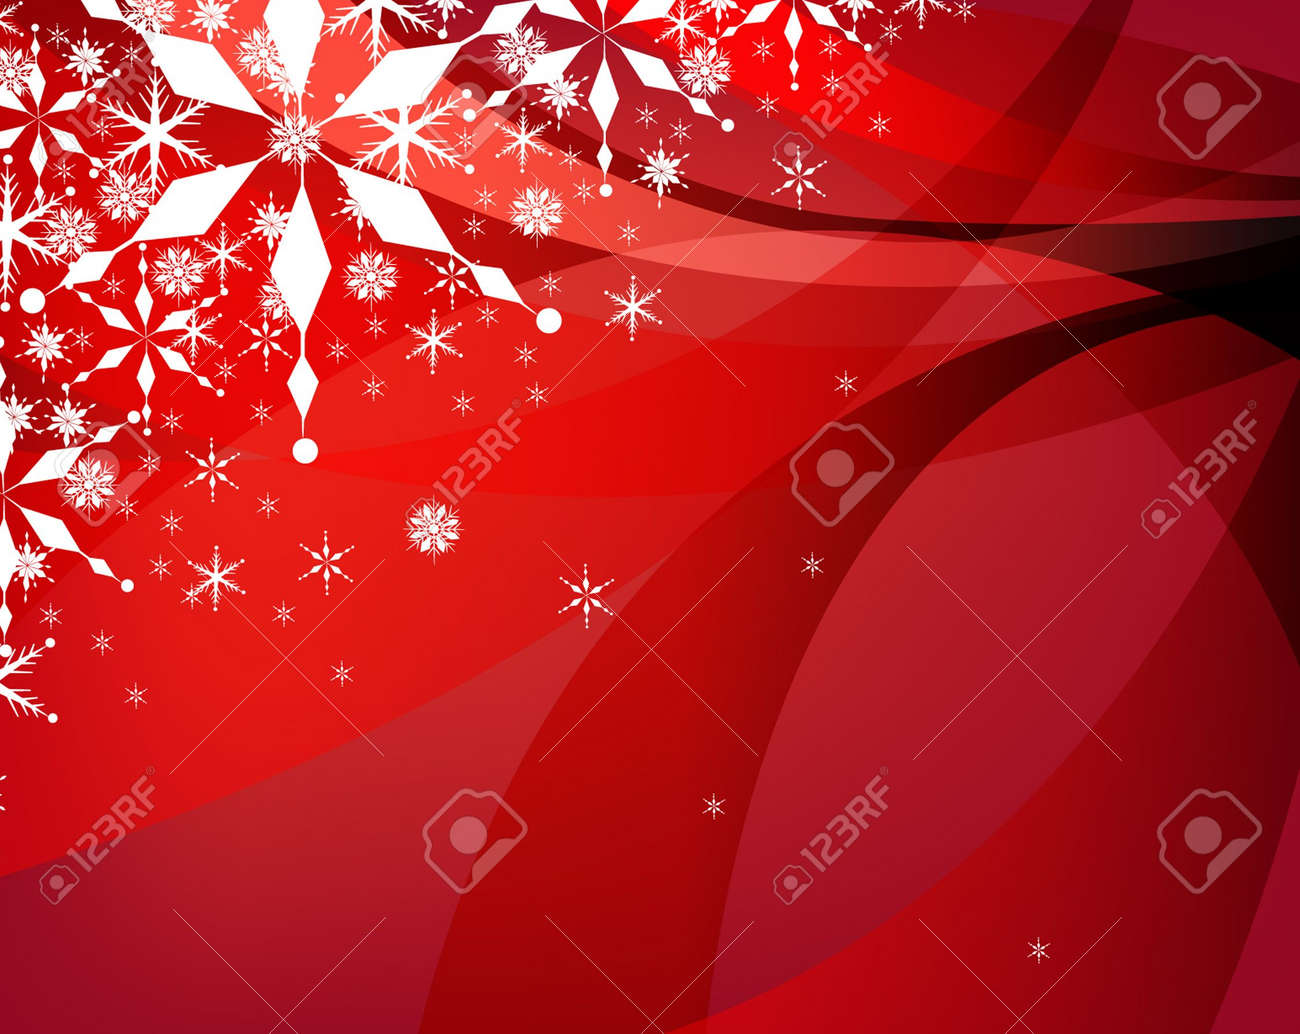 Gorgeous Christmas background with room for text Stock Photo - 1779434